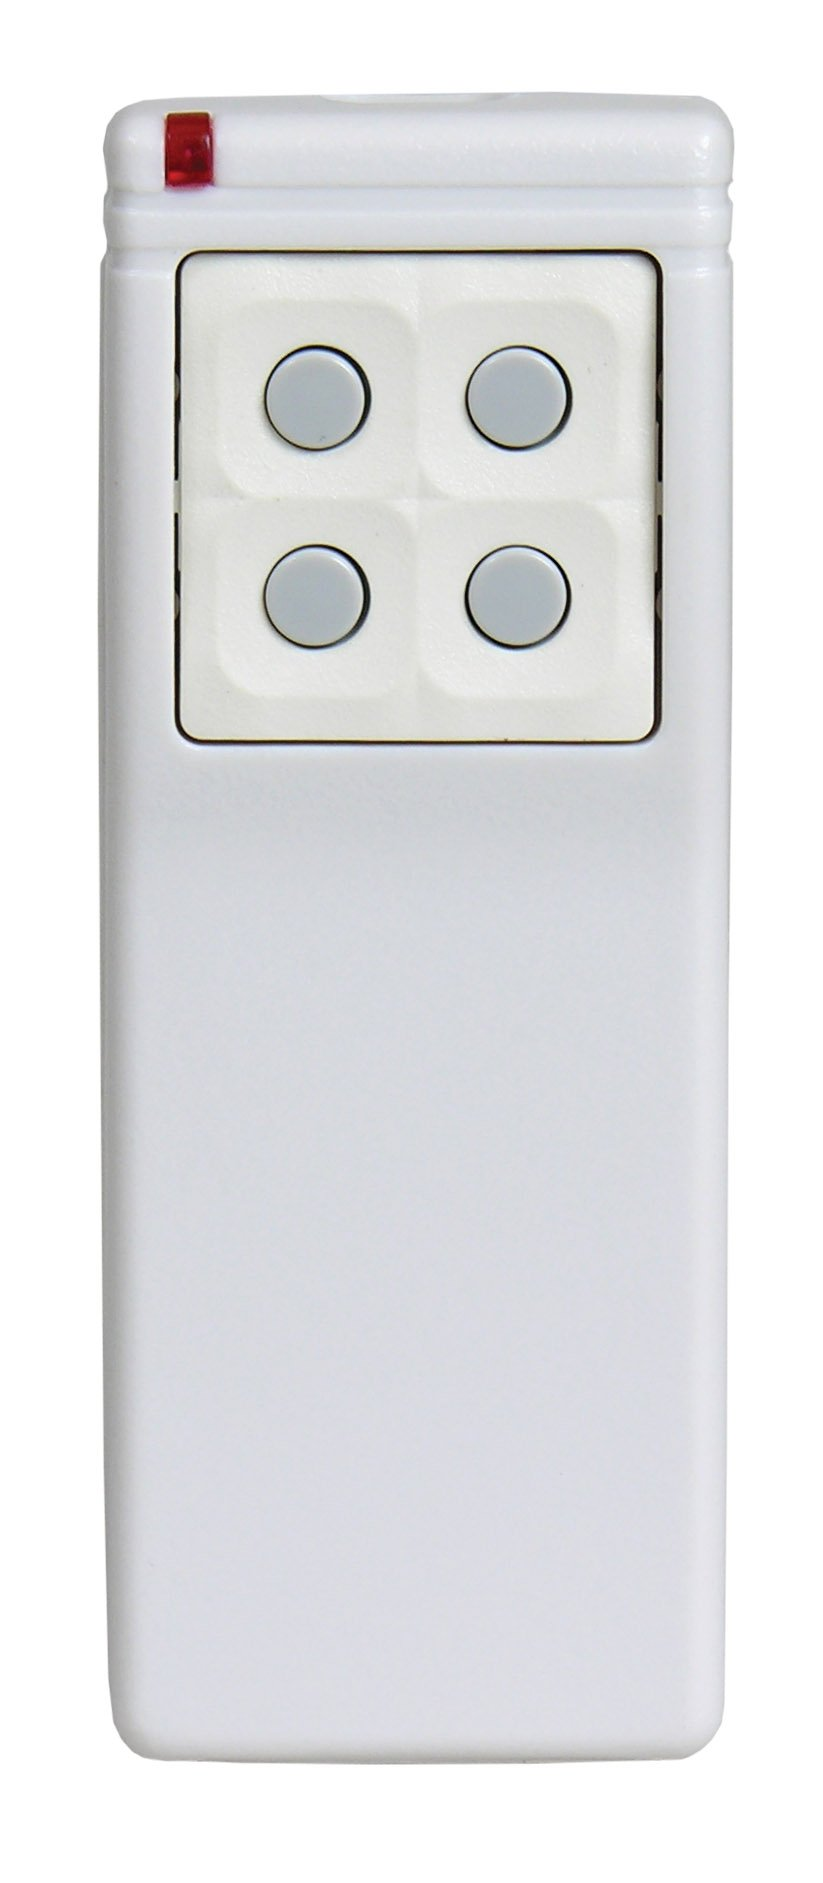 Linear DXS-25 Supervised 5-Button, 8-Channel Handheld Transmitter, White with Green Buttons